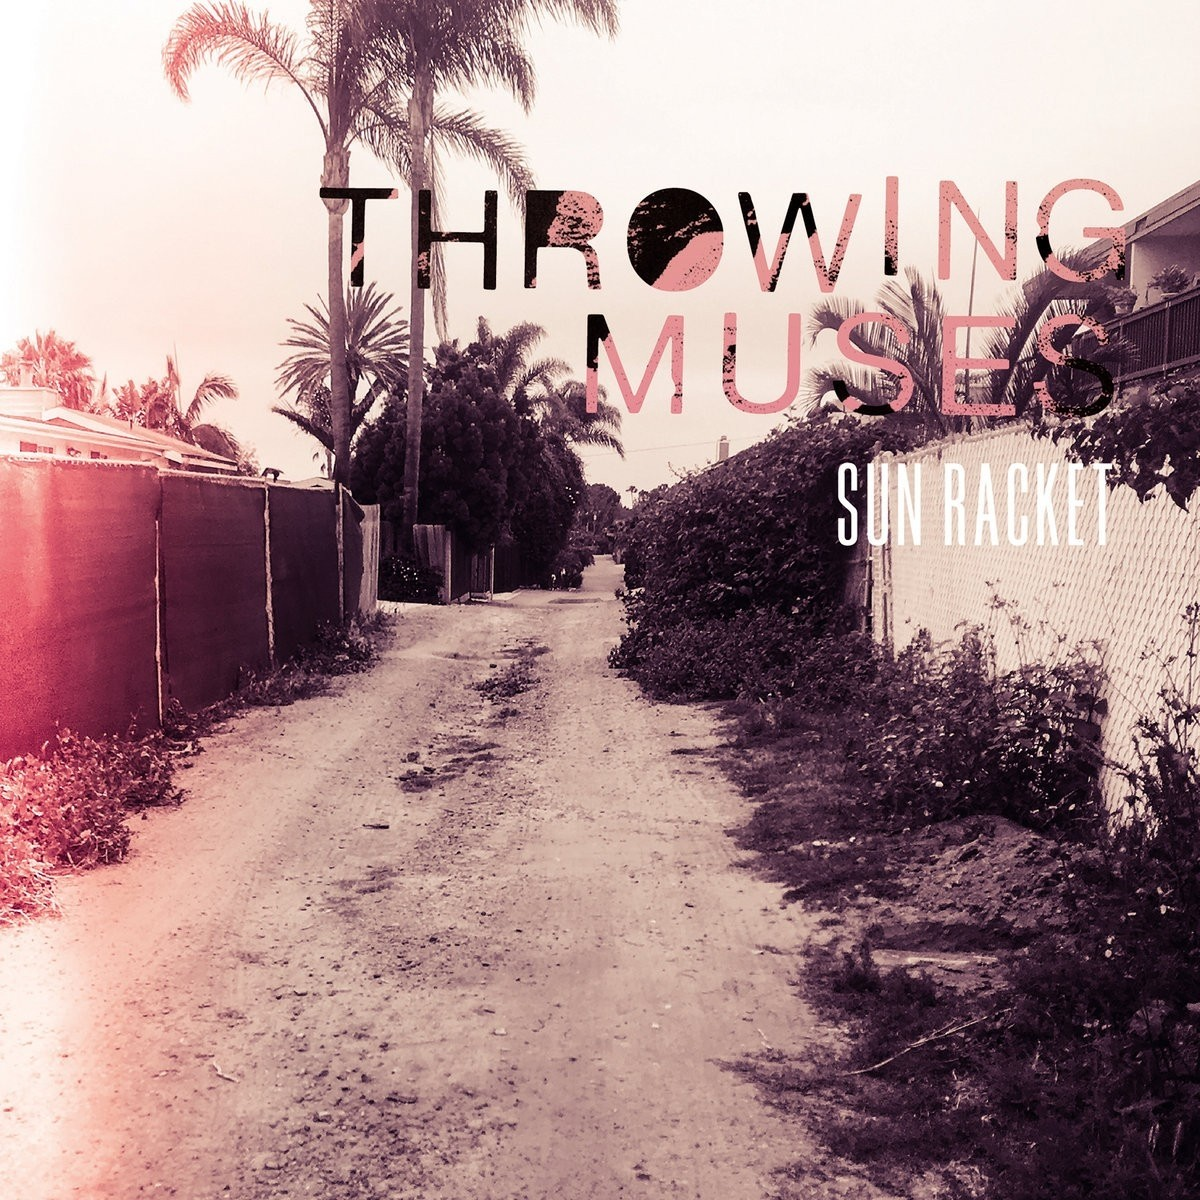 Throwing Muses - Sun Racket - Ltd